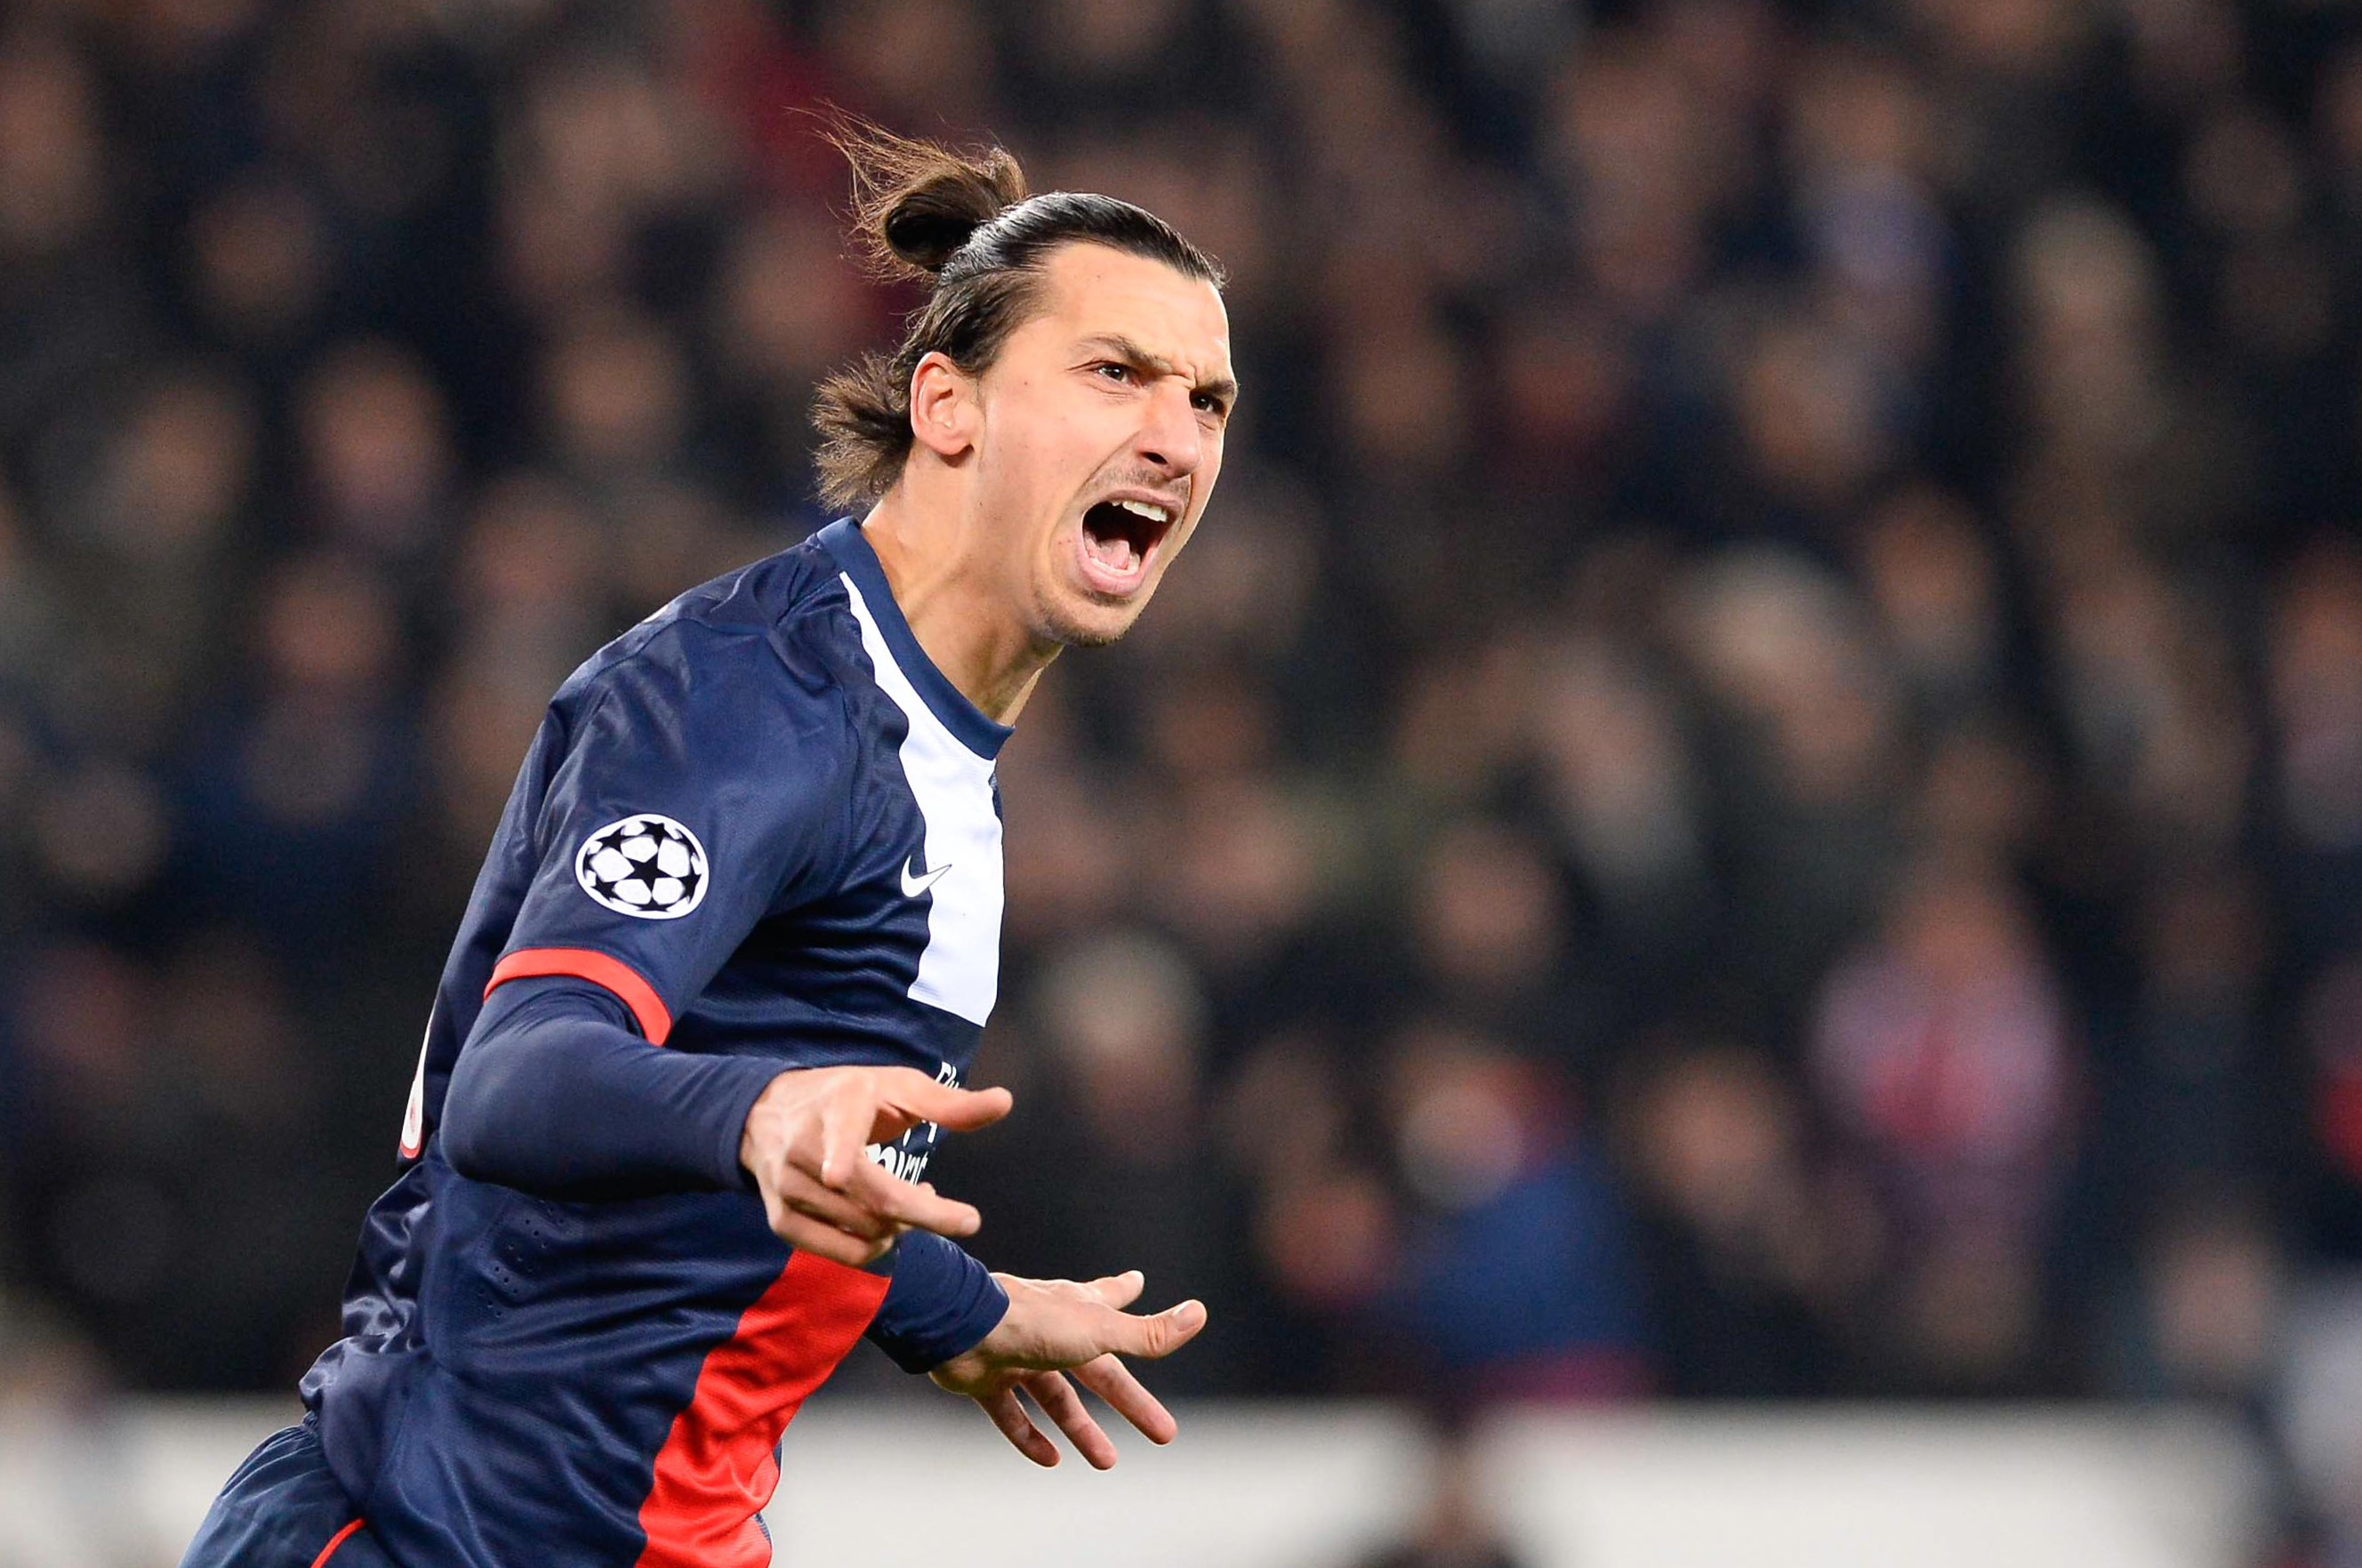 131127, Fotboll, Champions League, PSG - Olympiakos: Joie Zlatan IBRAHIMOVIC - 27.11.2013 - Paris Saint Germain / Olympiakos - Champions League Photo : Fred Porcu / Icon Sport © BildbyrŒn - COP 75 - SWEDEN ONLY